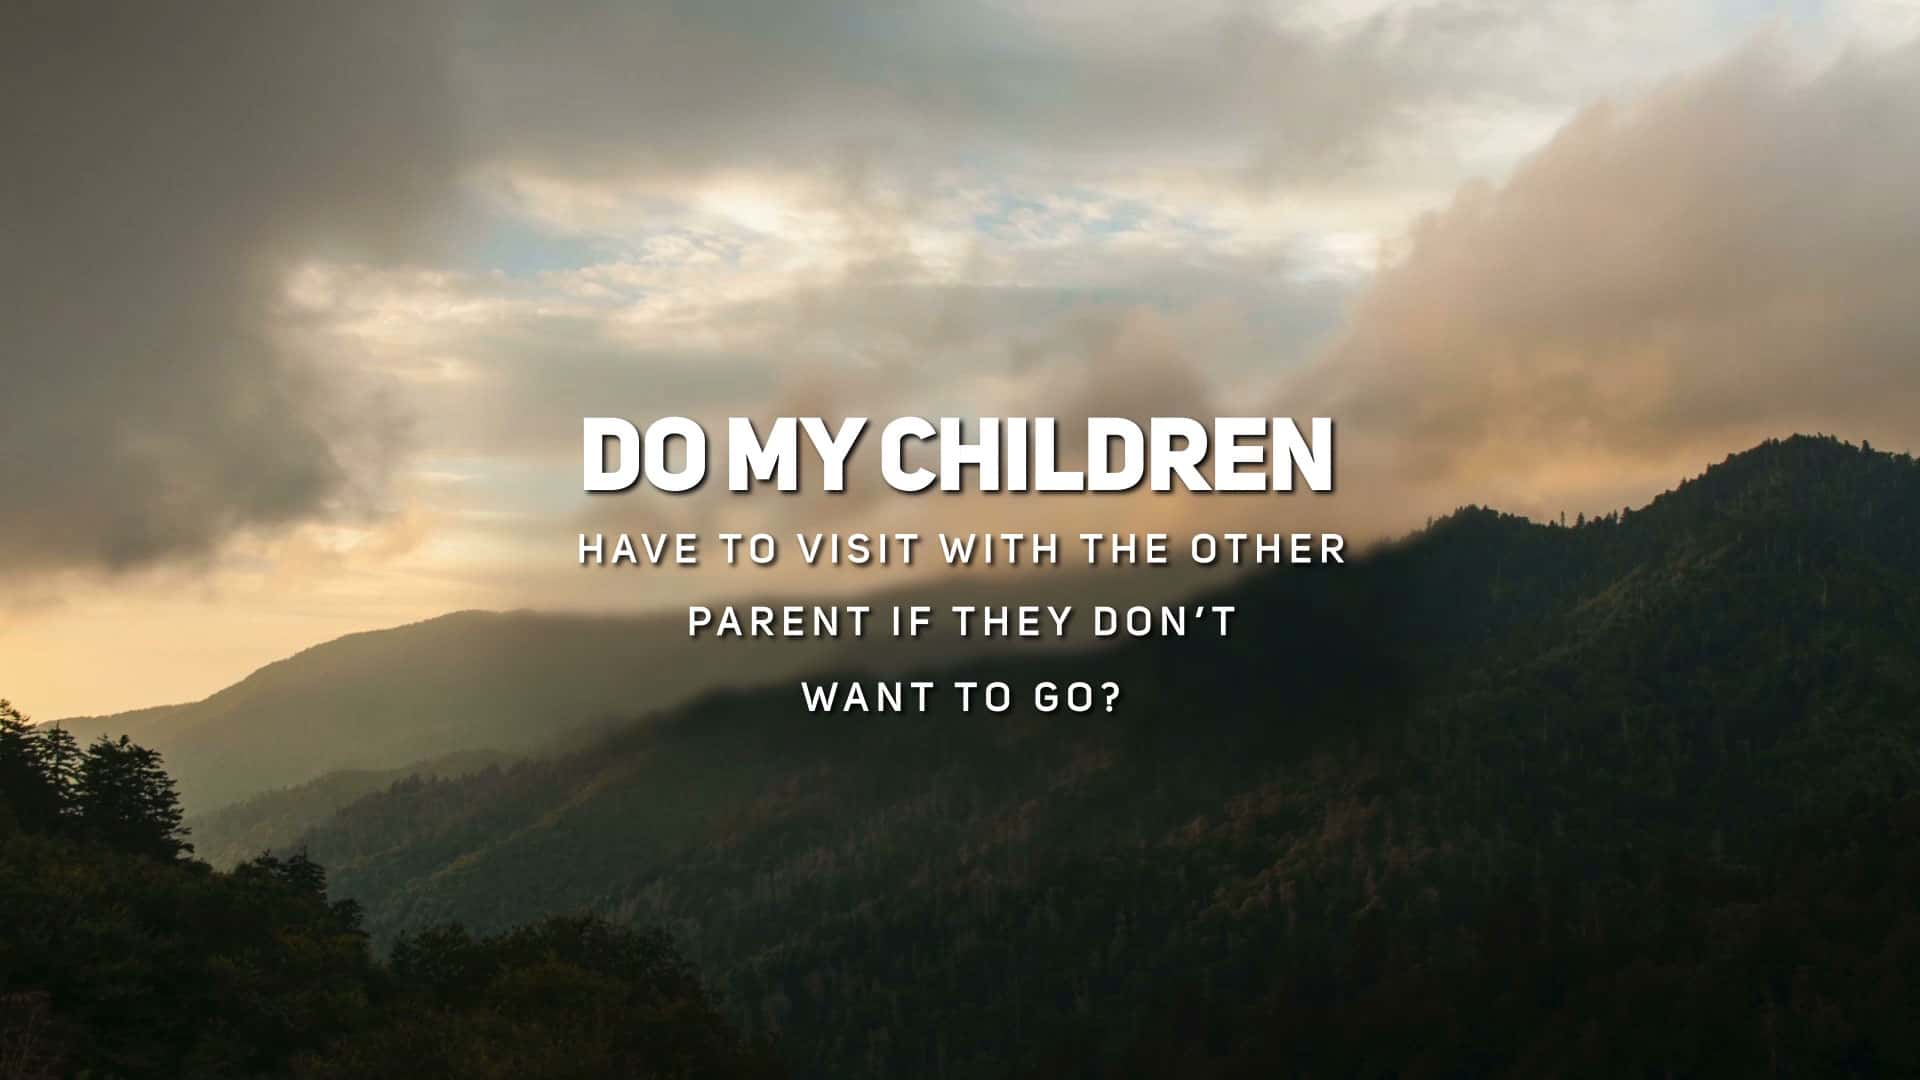 Do My Children Have to Visit with the Other Parent if They Don't Want to go